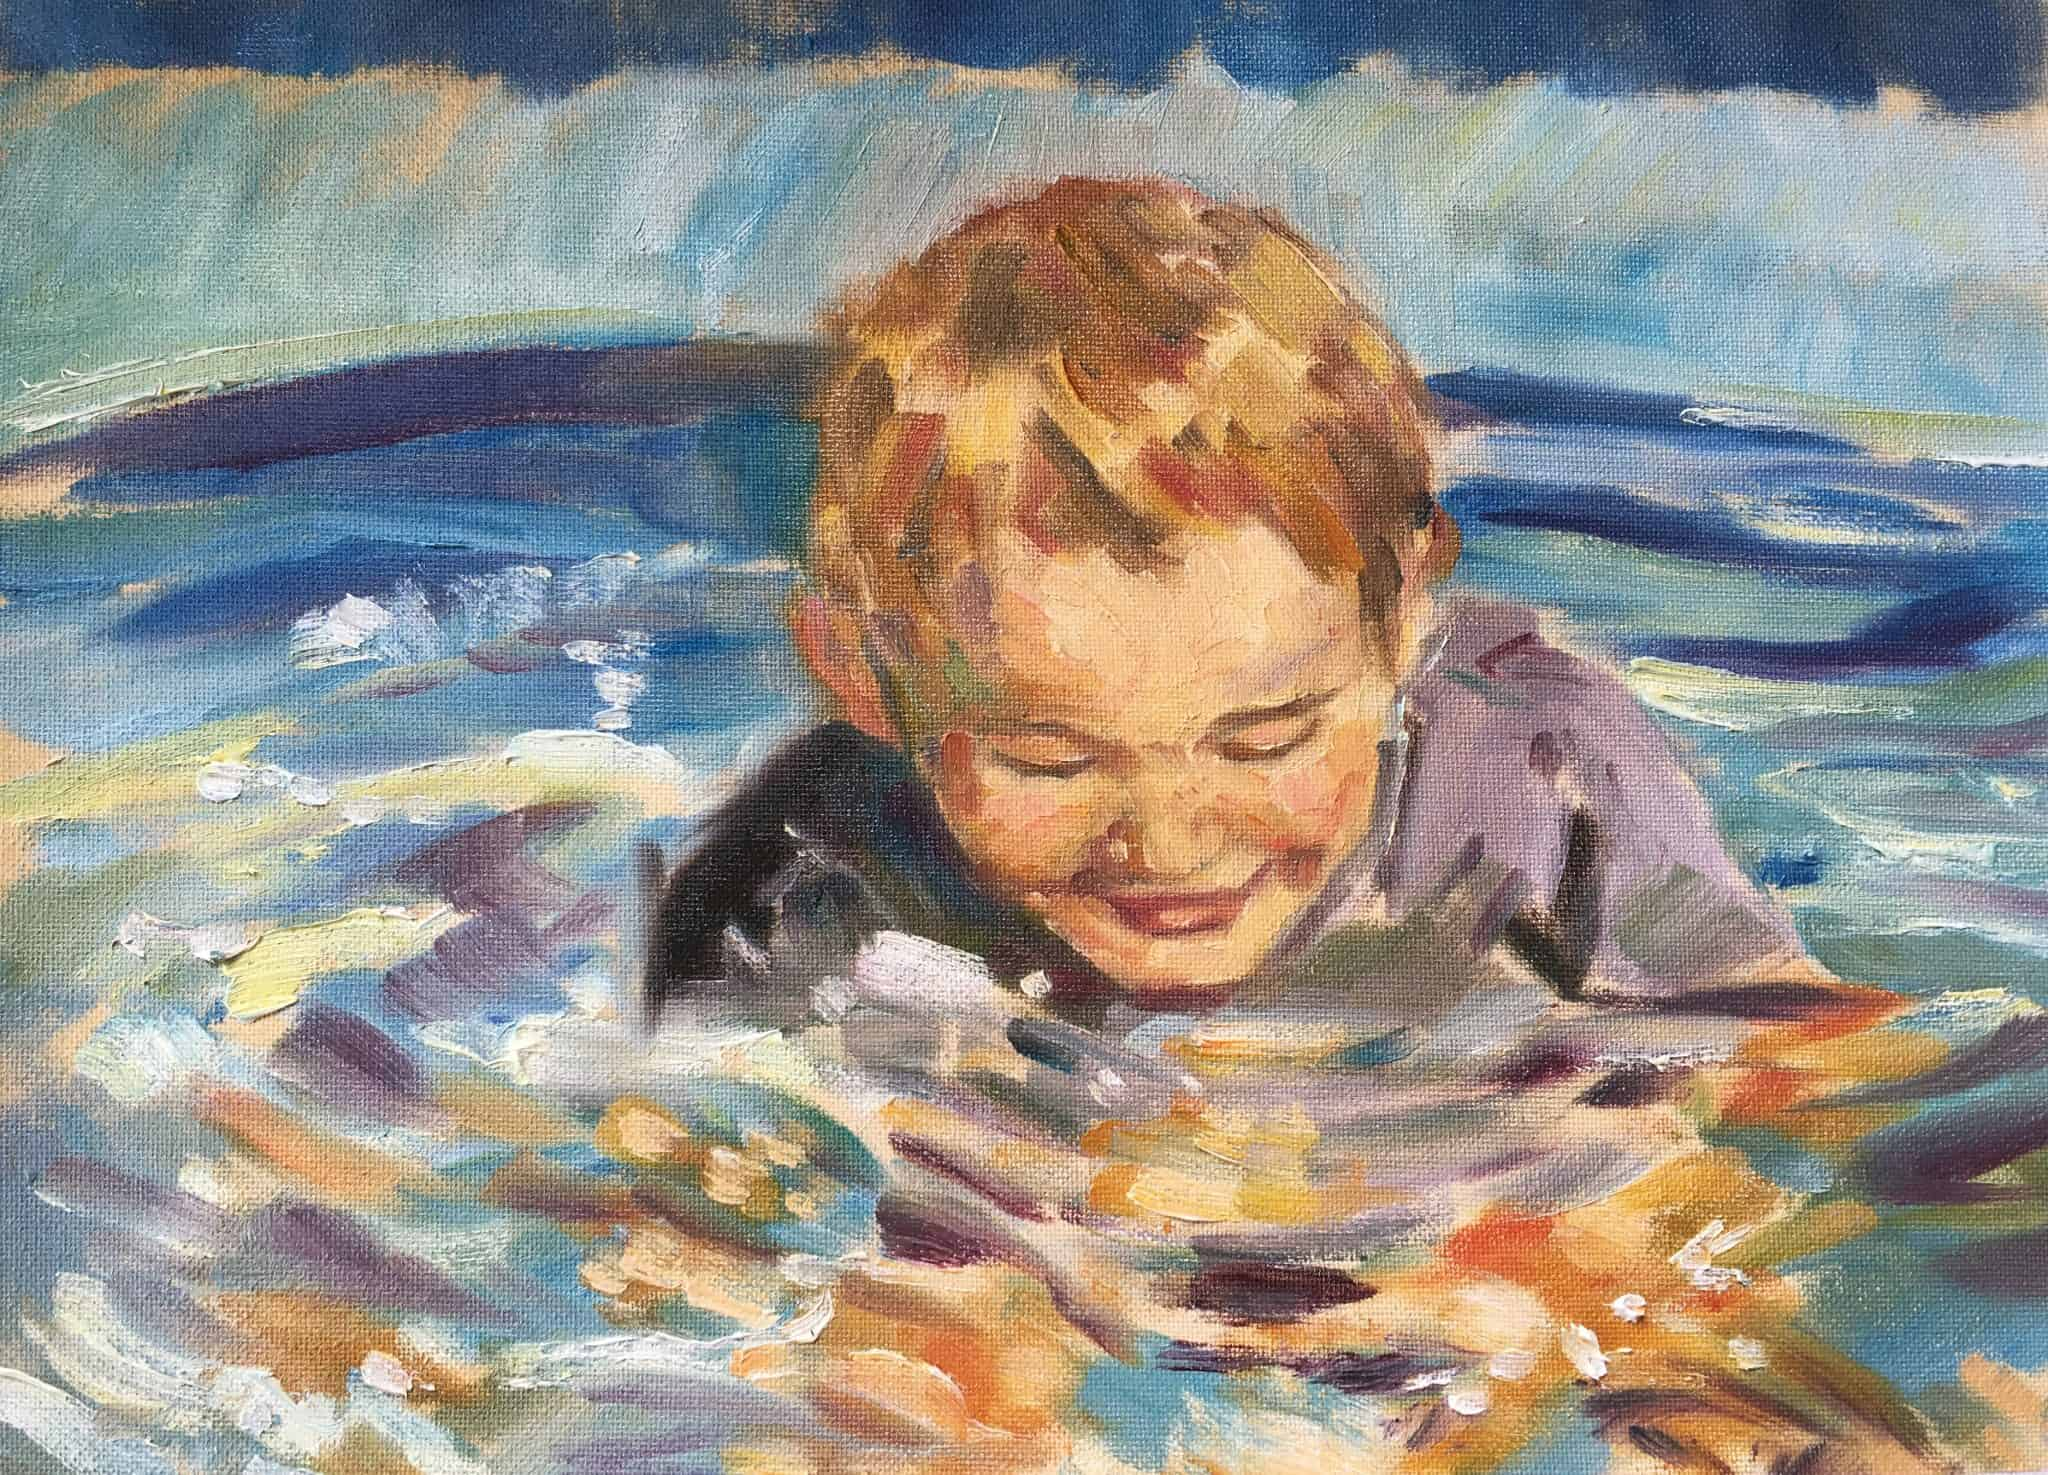 Water Fun - Emma Kate Hulett